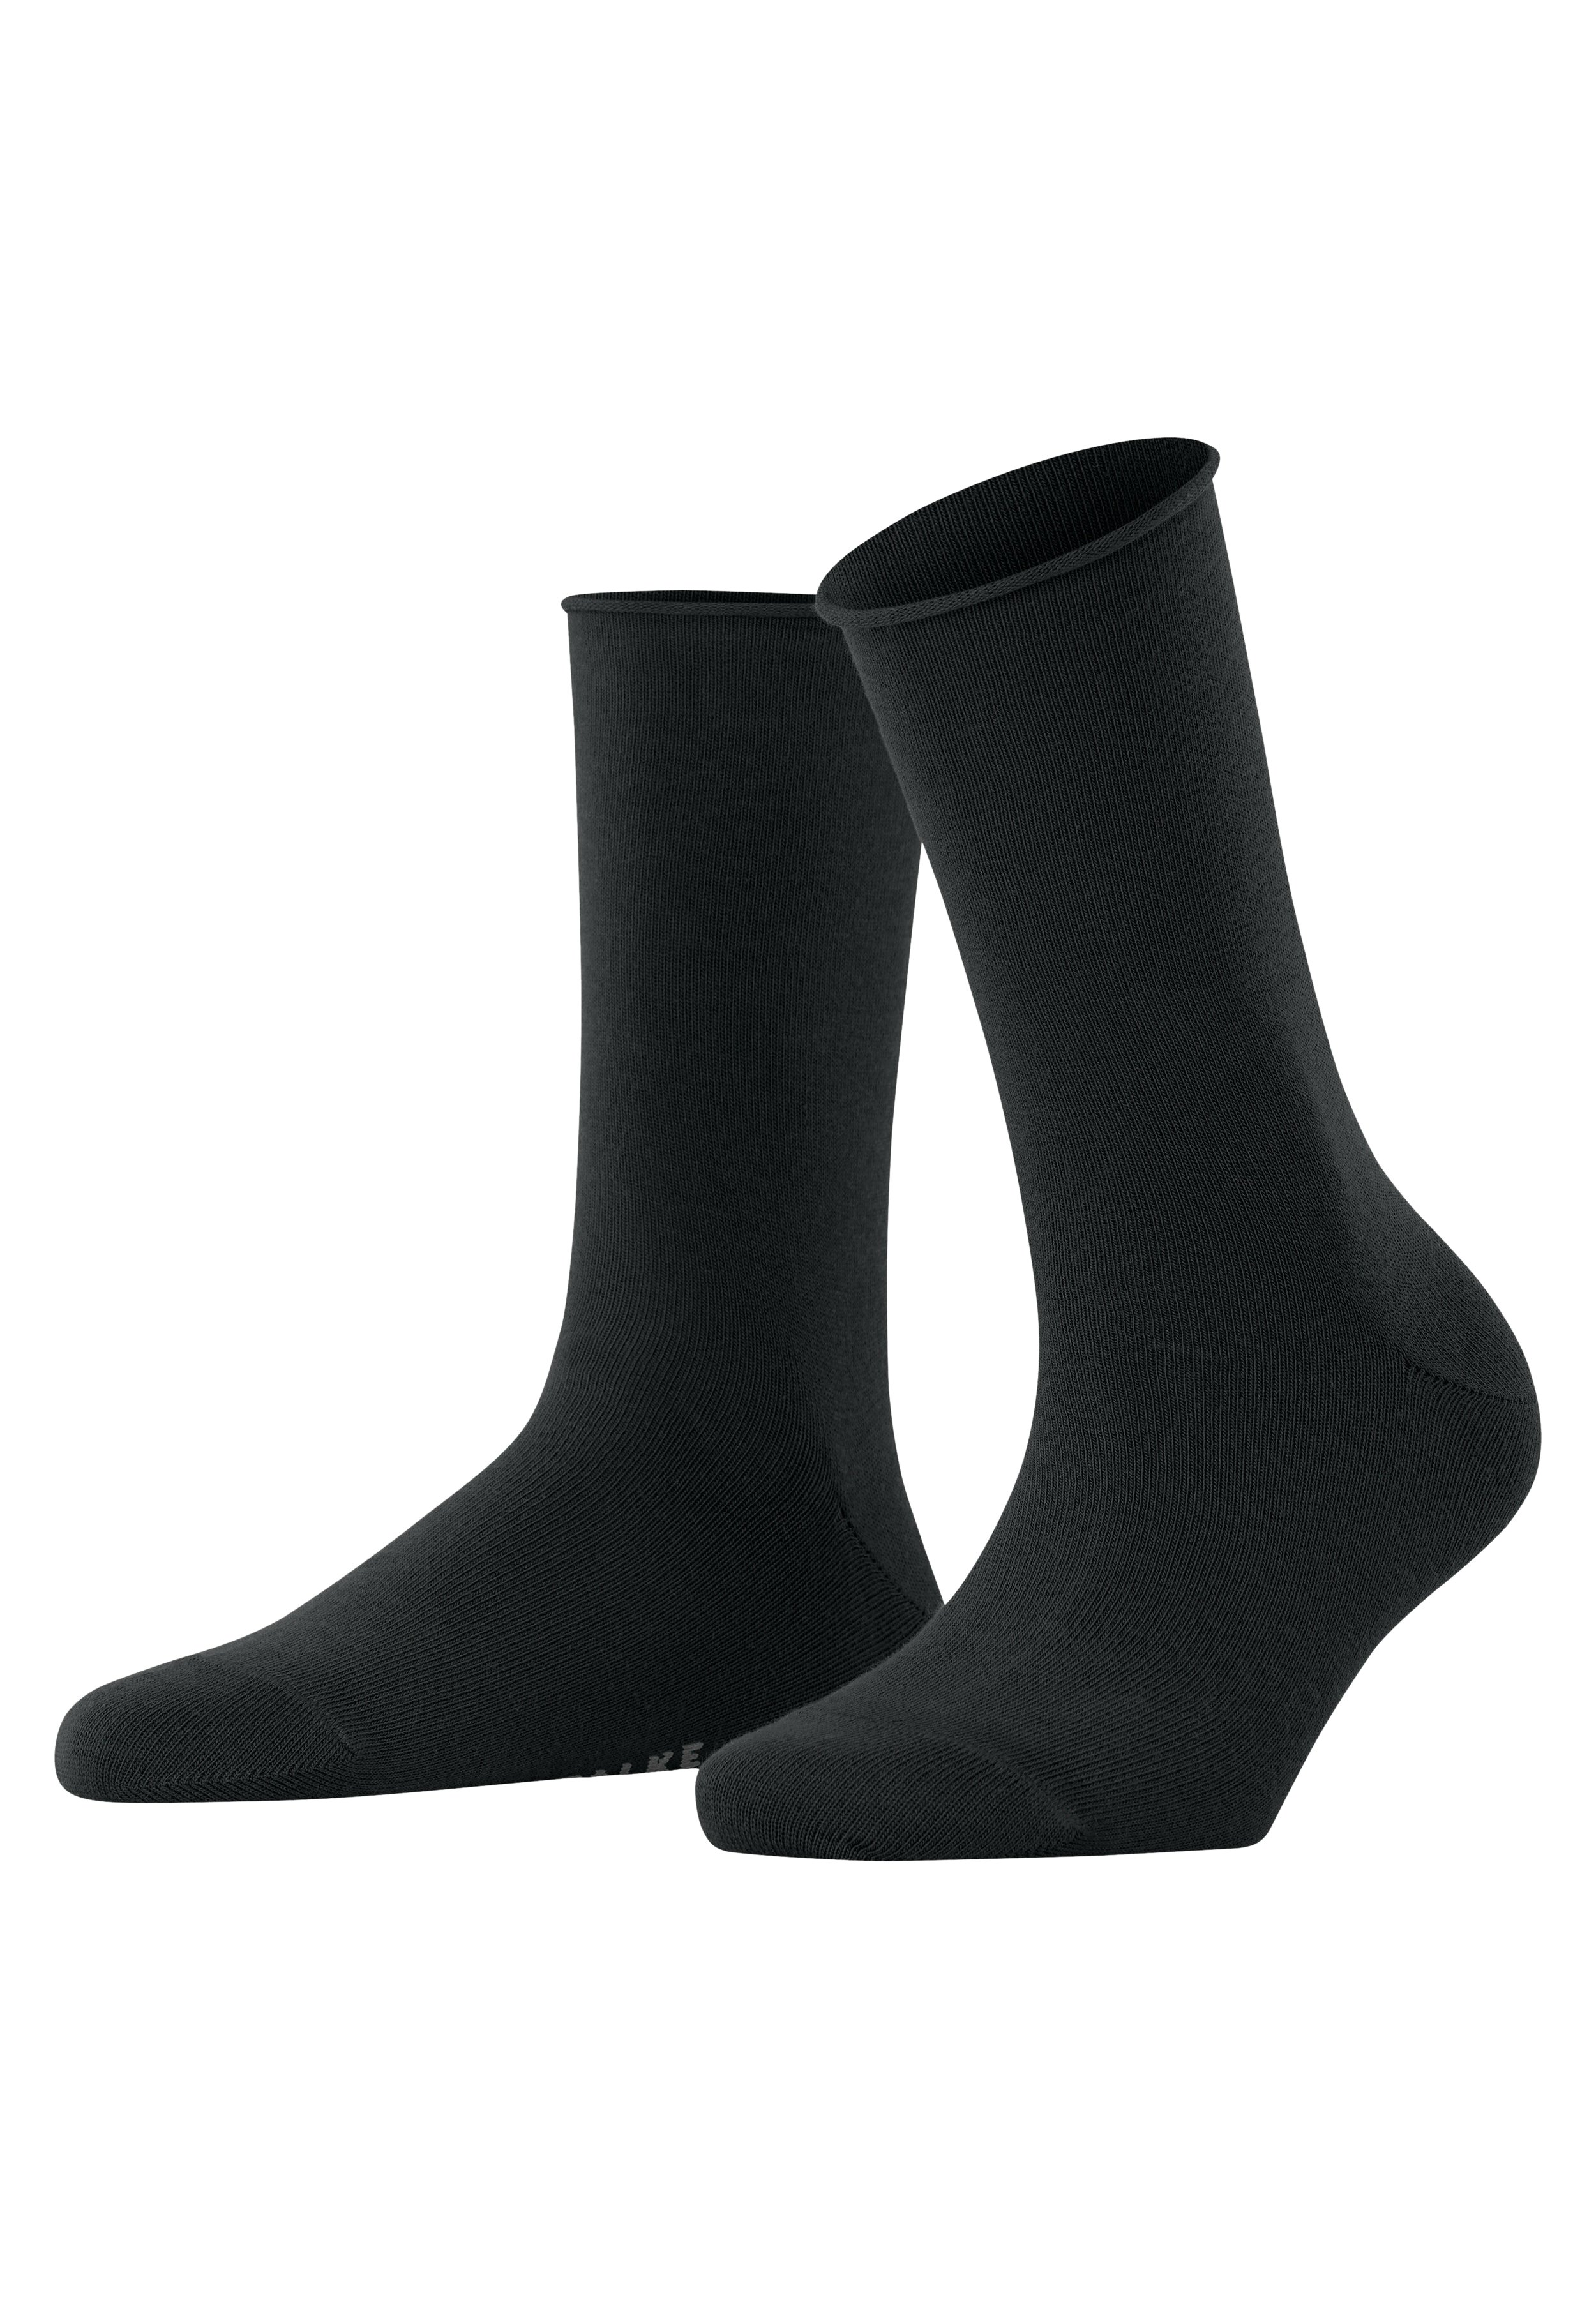 Femme HAPPY 2-PACK - Chaussettes